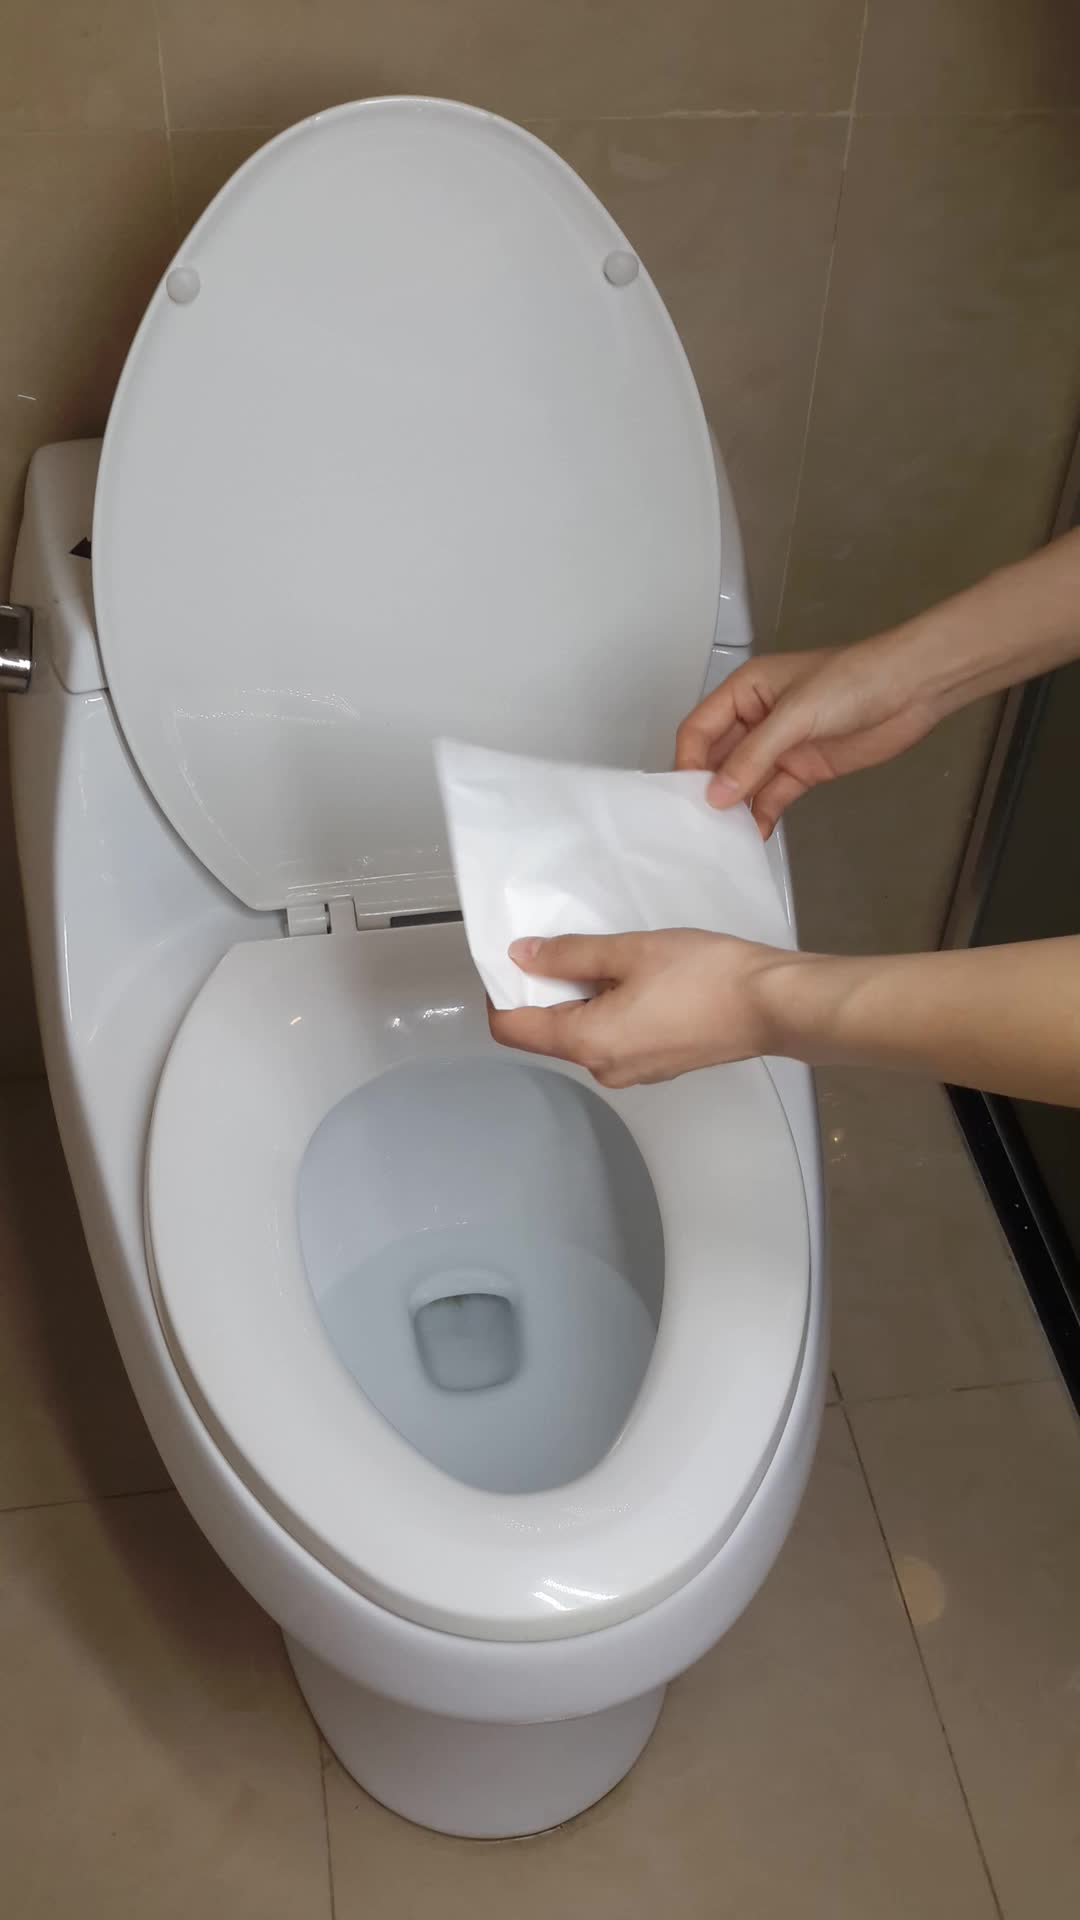 Public Toilets Use Disposable Flushable Paper Toilet Seat